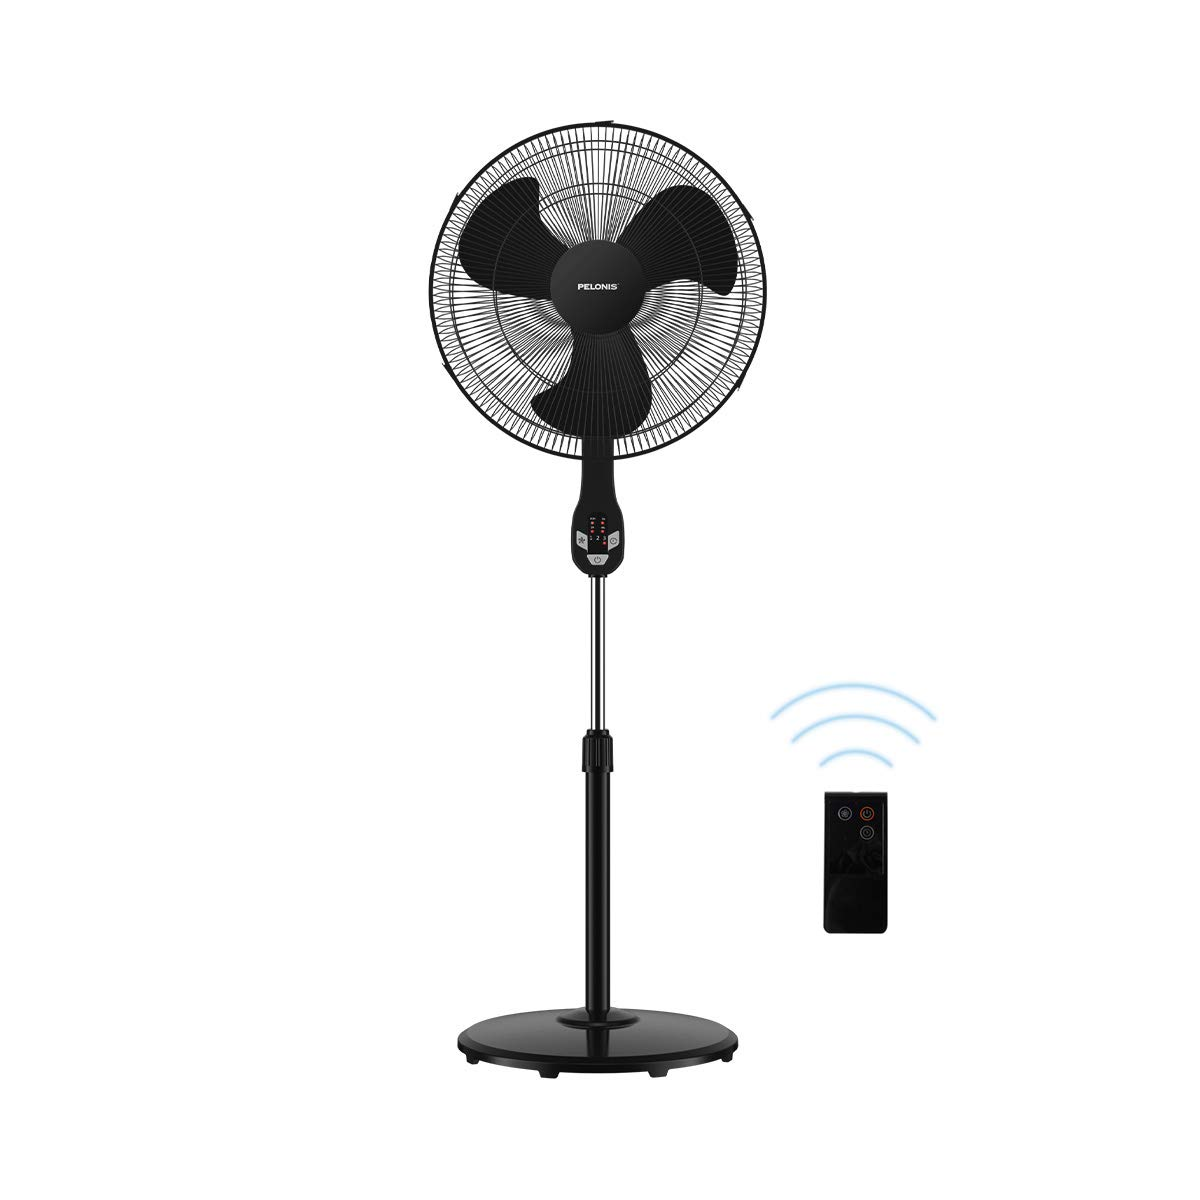 Pelonis FS45-18UR 18'' Quiet Oscillating Pedestal Fan with LED Display, Remote Control, 3 Speeds and Modes, 7h Programmed Timer for Home and Office, Glossy Black, 18 Inch by PELONIS